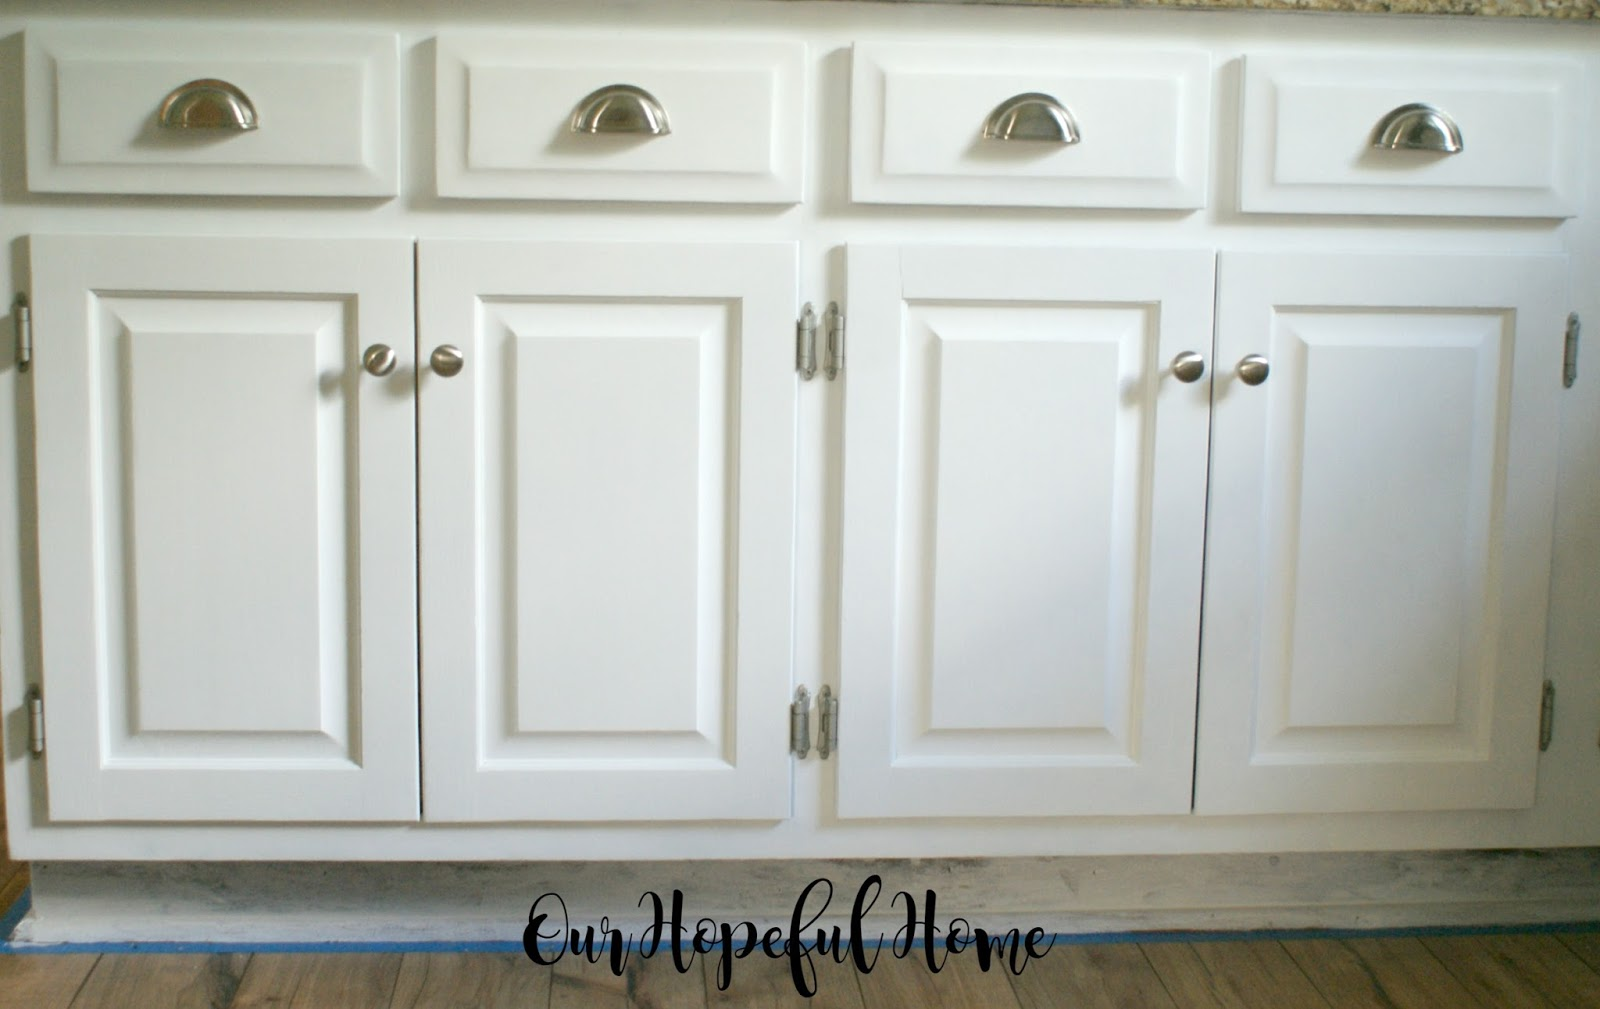 Farmhouse Bathroom Drawer Pulls Our Hopeful Home How To Install Farmhouse Kitchen Towel Bars